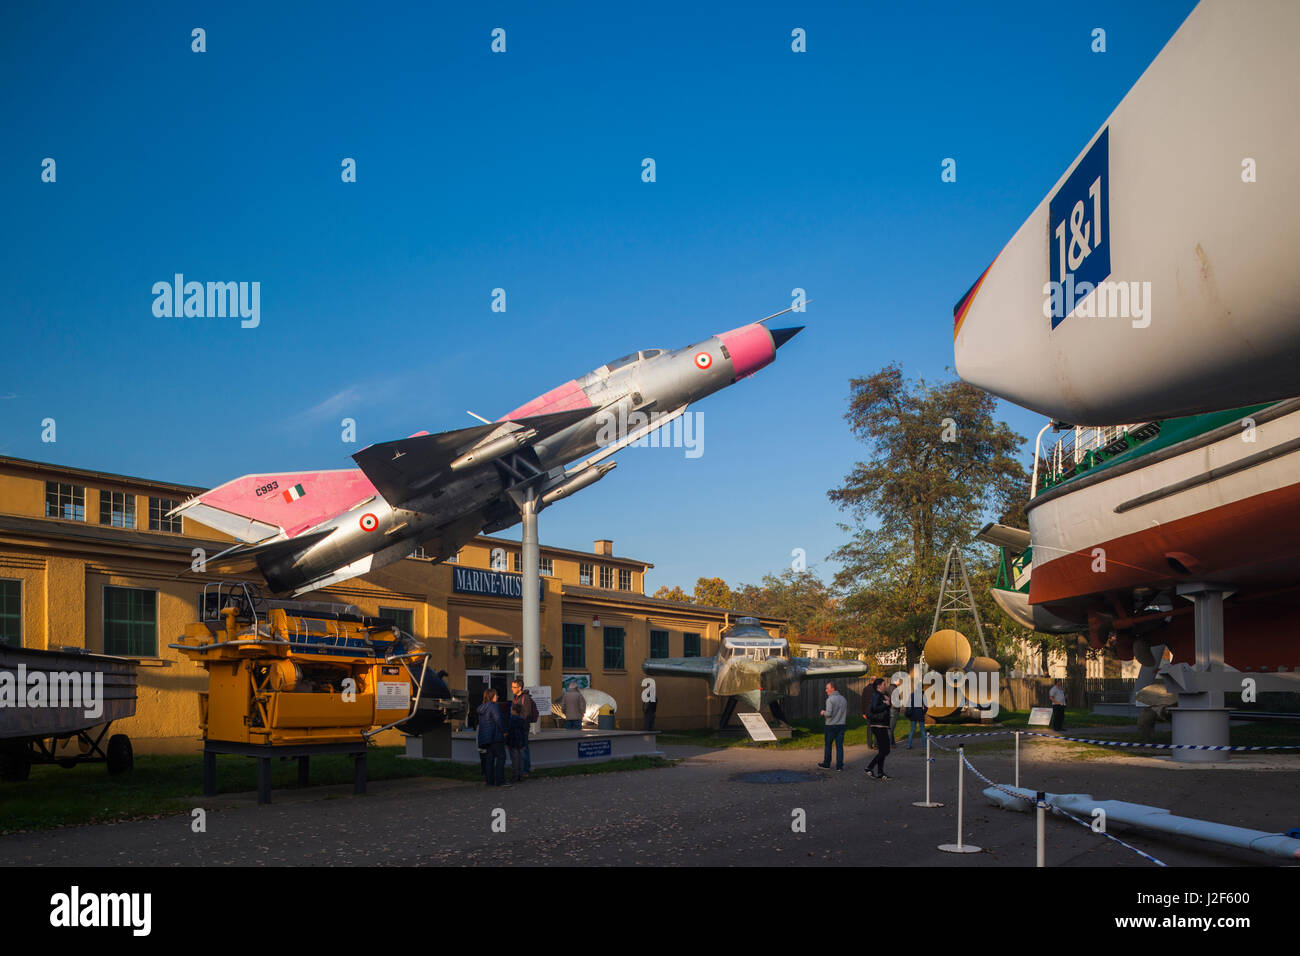 Germany, Rhineland-Pfalz, Museum Speyer, Mig 21 jet fighter in Indian Airforce markings - Stock Image